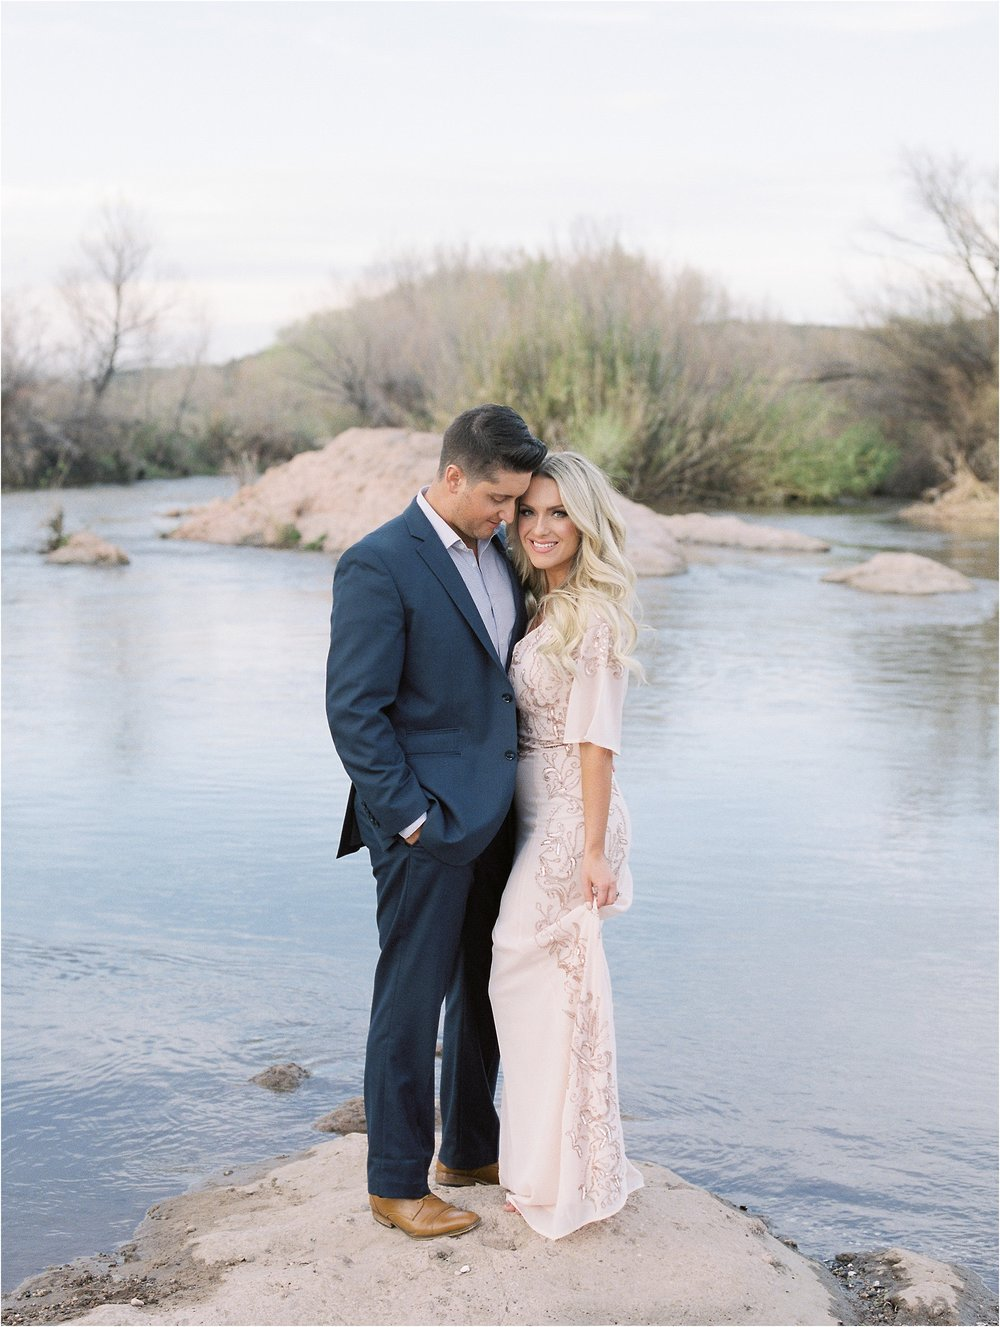 Sarah Jane Photography Film Hybrid Scottsdale Phoenix Arizona Destination Wedding Photographer salt river asos engagement britney tj_0021.jpg